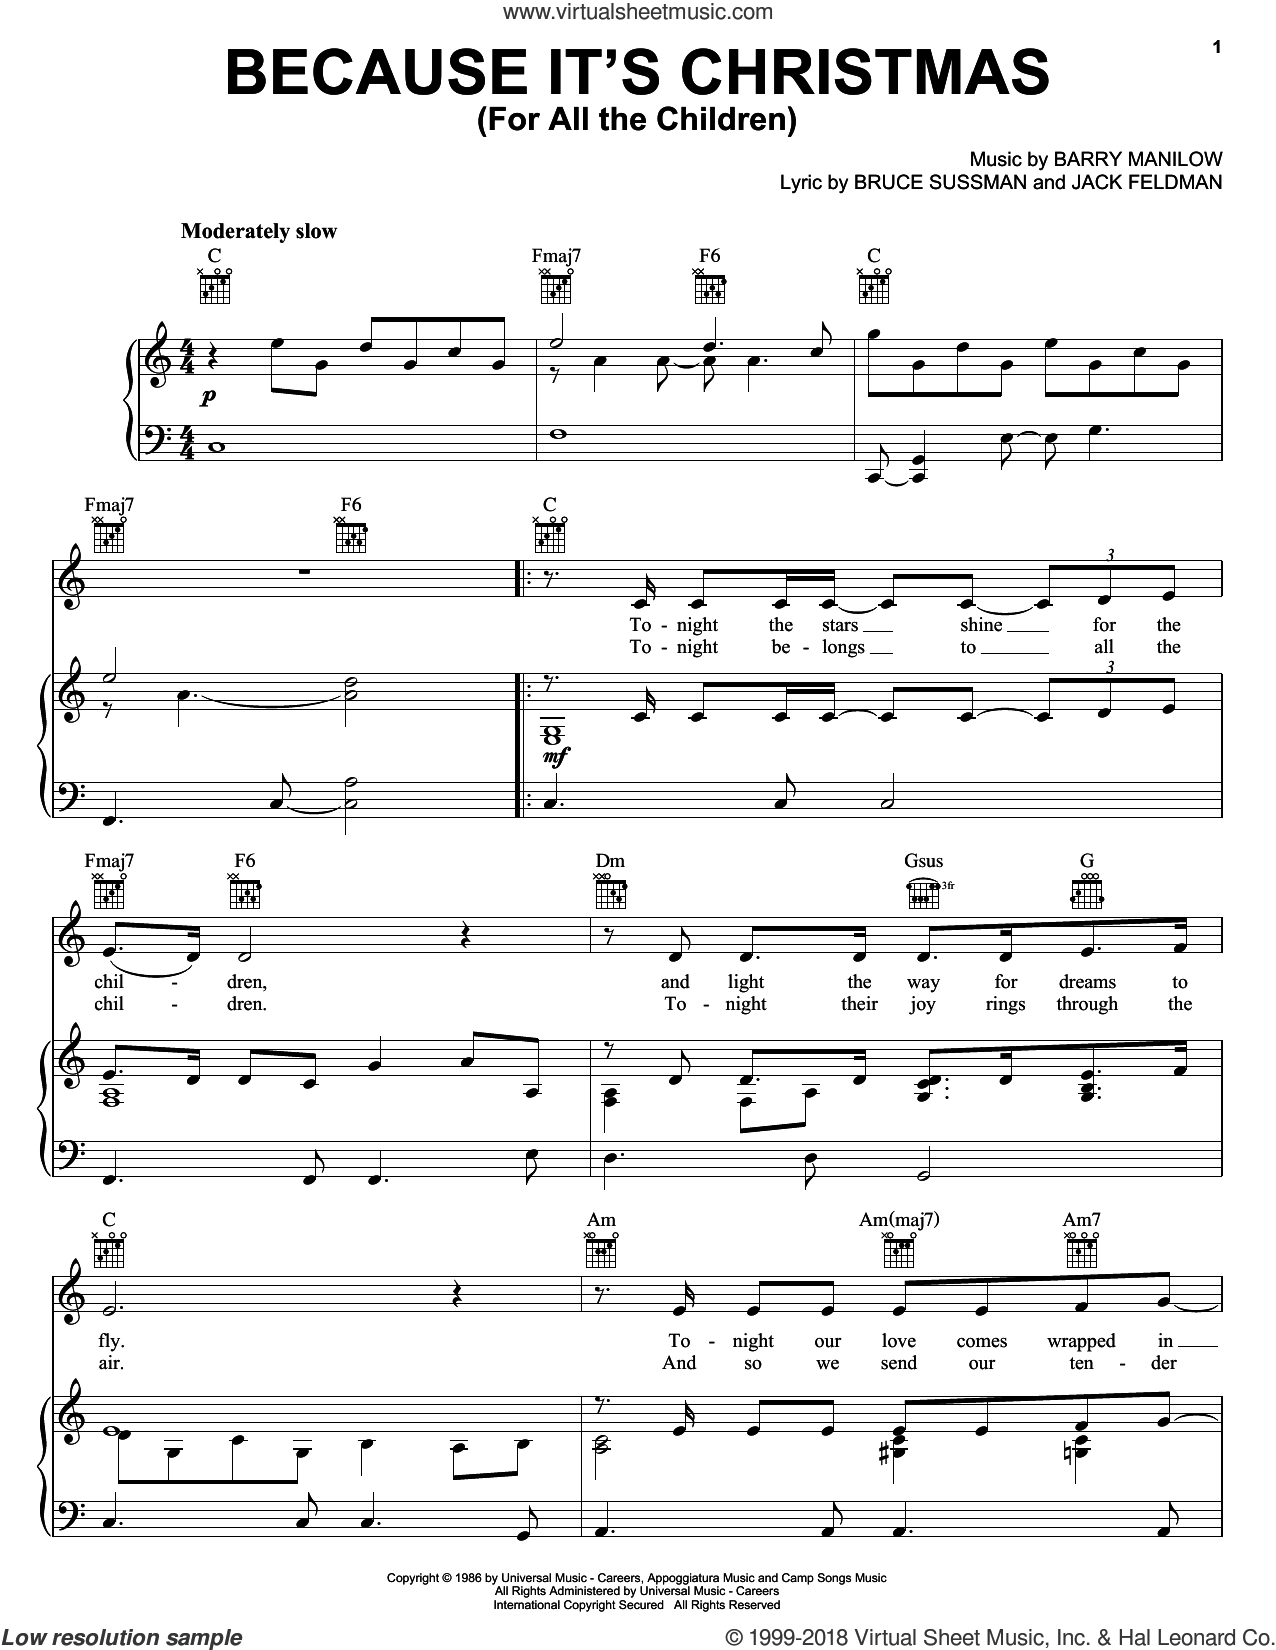 Because It's Christmas (For All The Children) sheet music for voice, piano or guitar by Jack Feldman, Barry Manilow and Bruce Sussman. Score Image Preview.